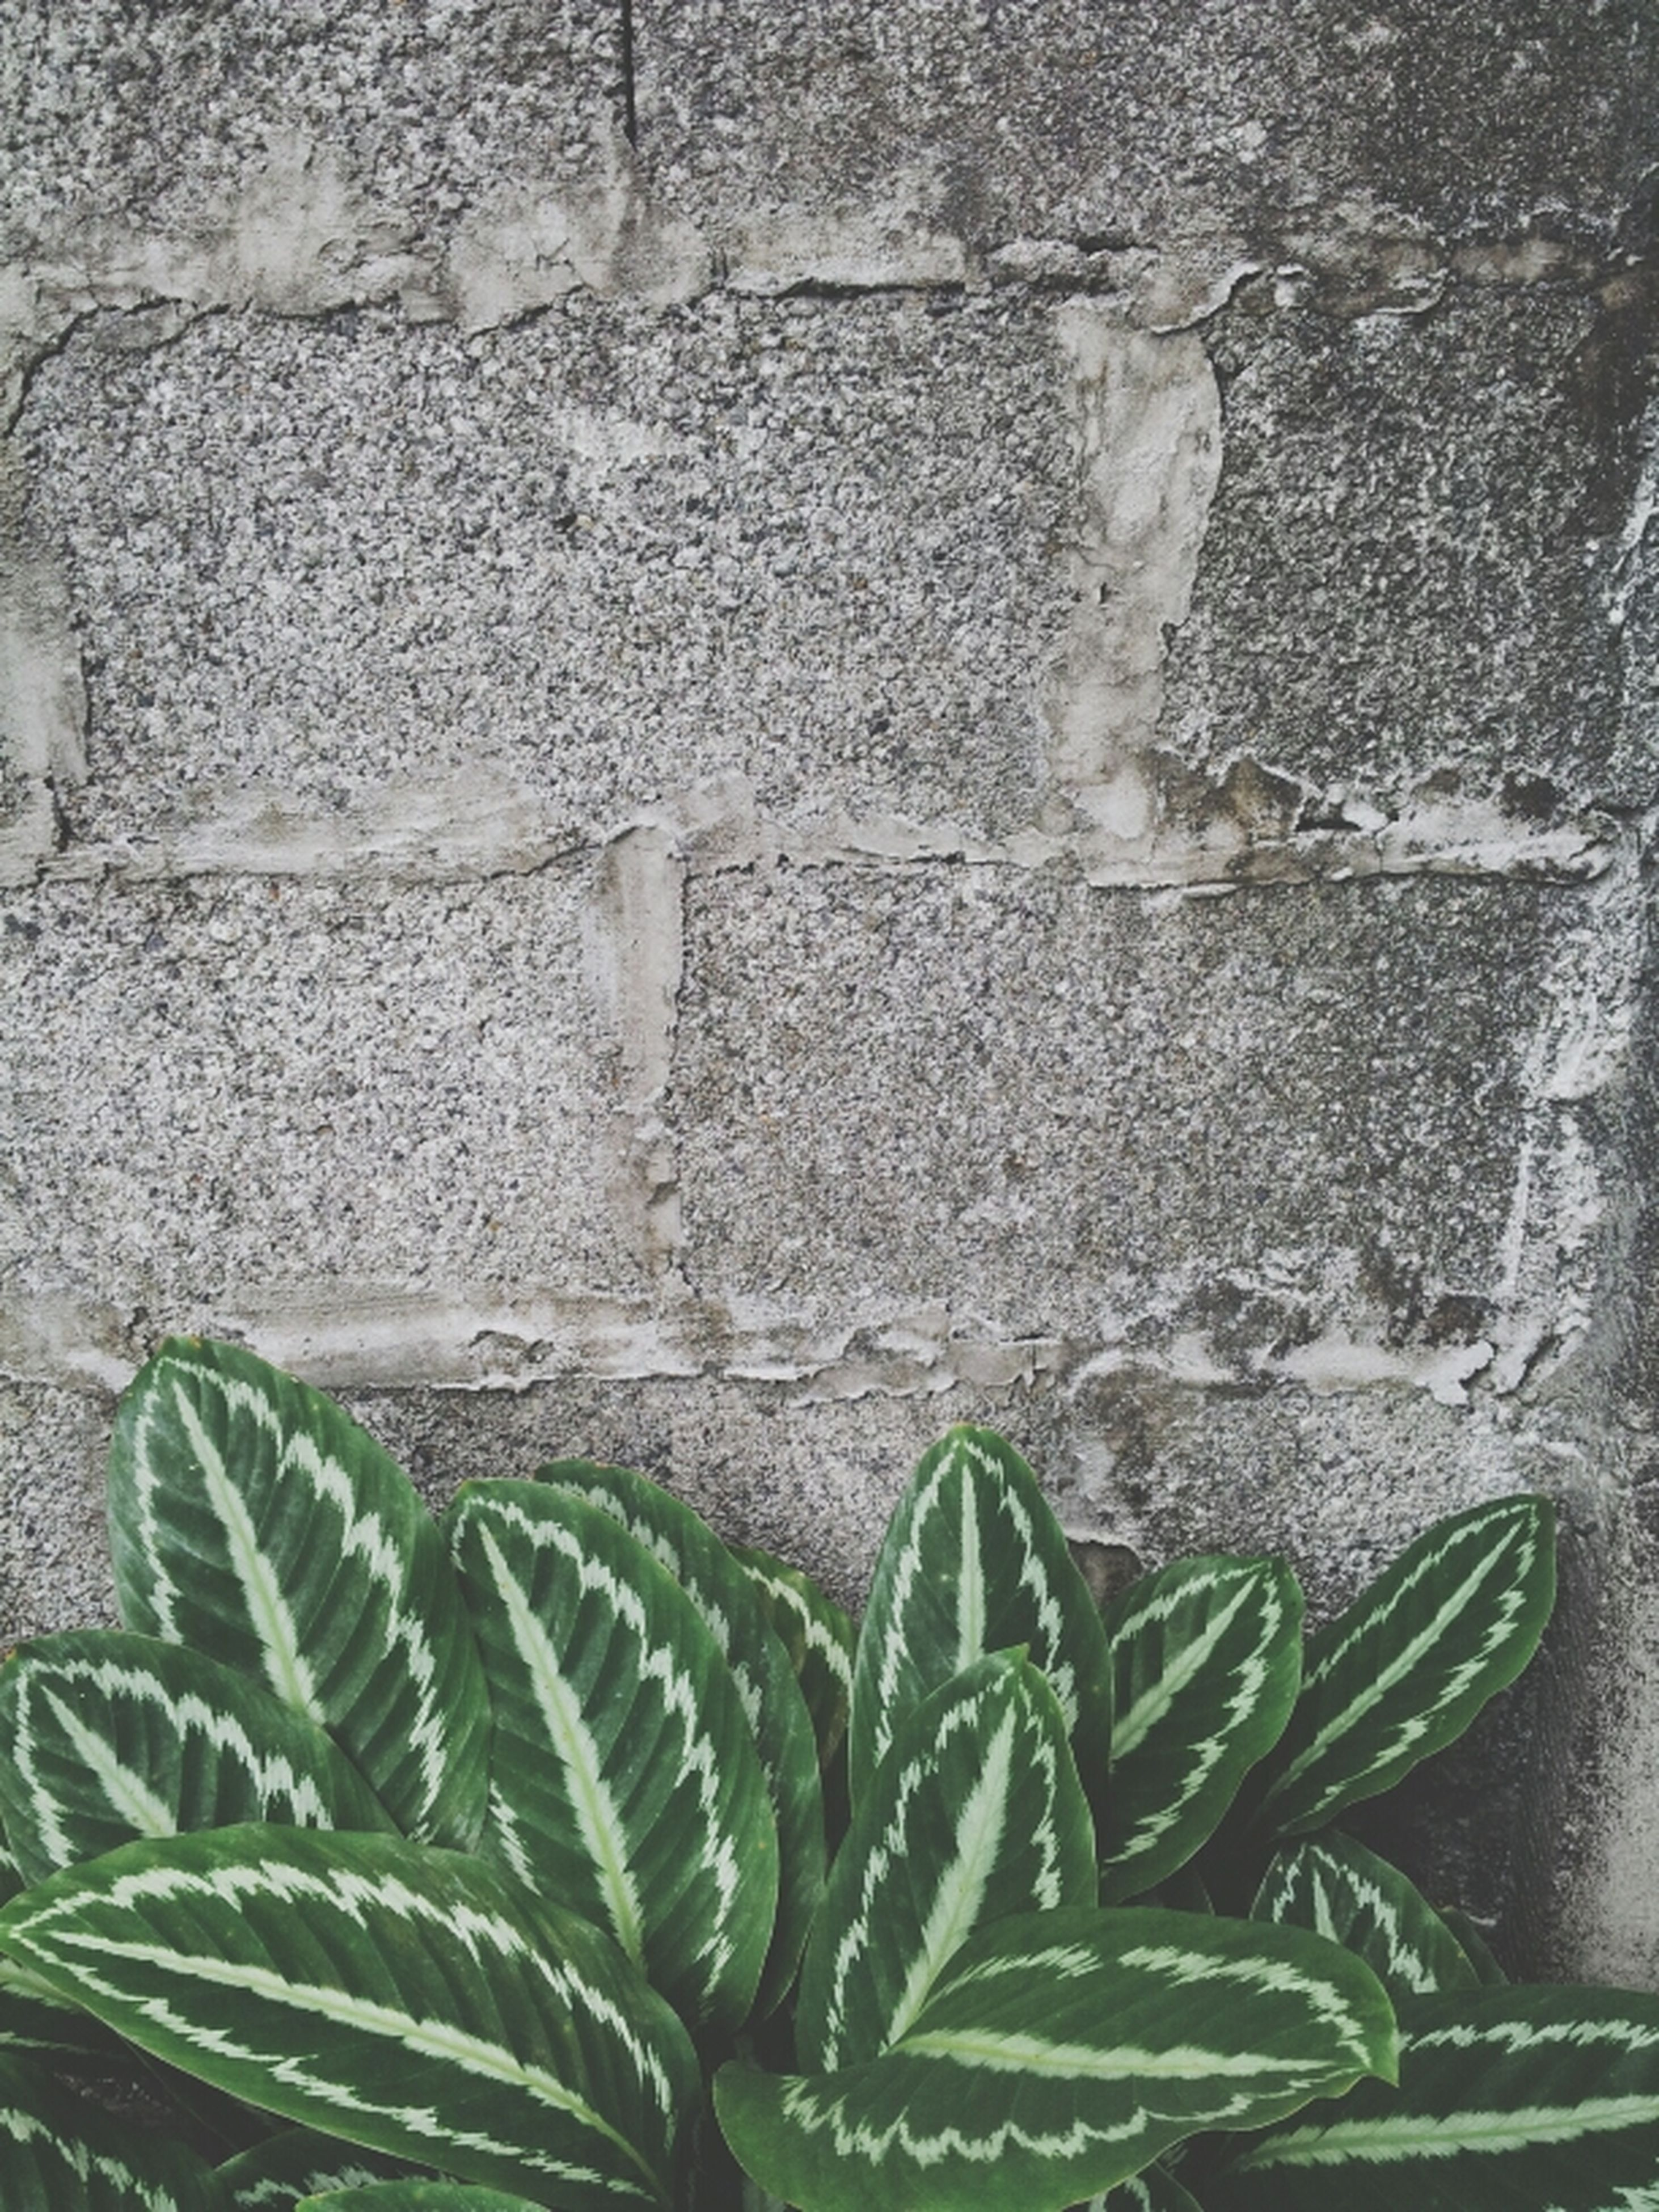 leaf, green color, plant, growth, wall - building feature, close-up, textured, nature, outdoors, growing, day, high angle view, pattern, no people, brick wall, ivy, built structure, green, stone wall, architecture